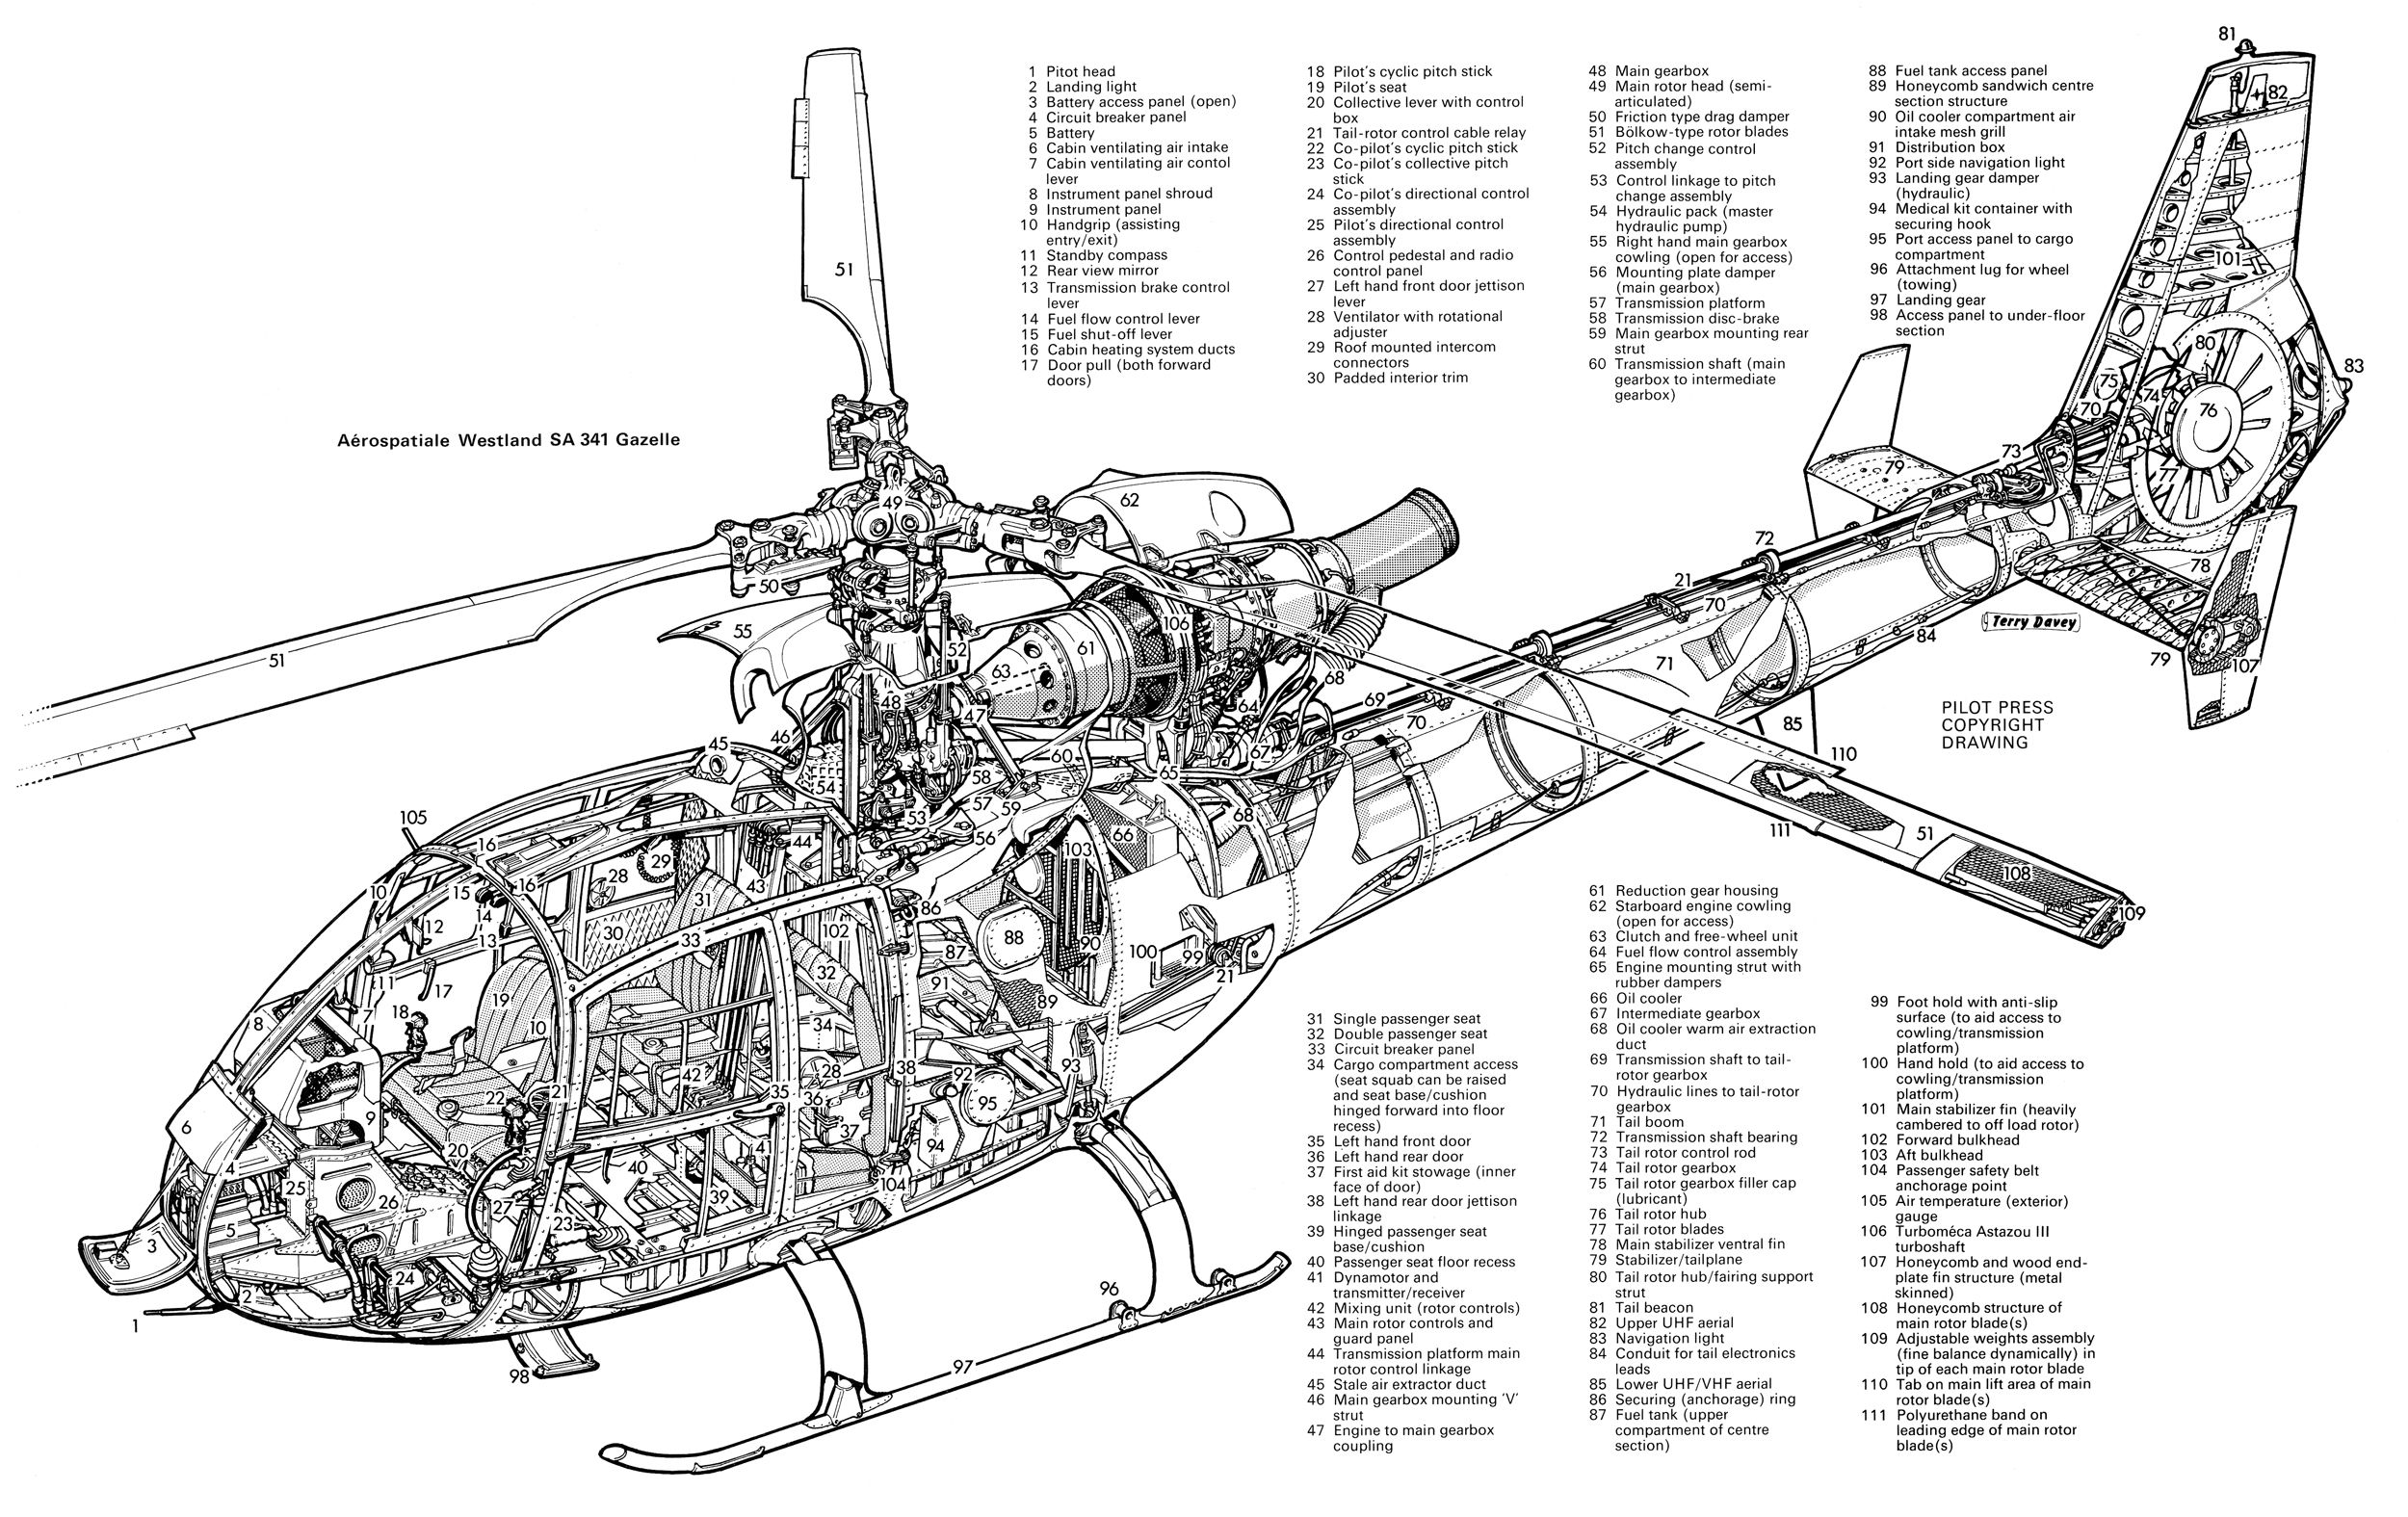 lynx helicopter engine with Printthread on Fluorine Kprawl P1 in addition Ec135p3 calstar moreover H 1yz kaman likewise Printthread together with P275359.